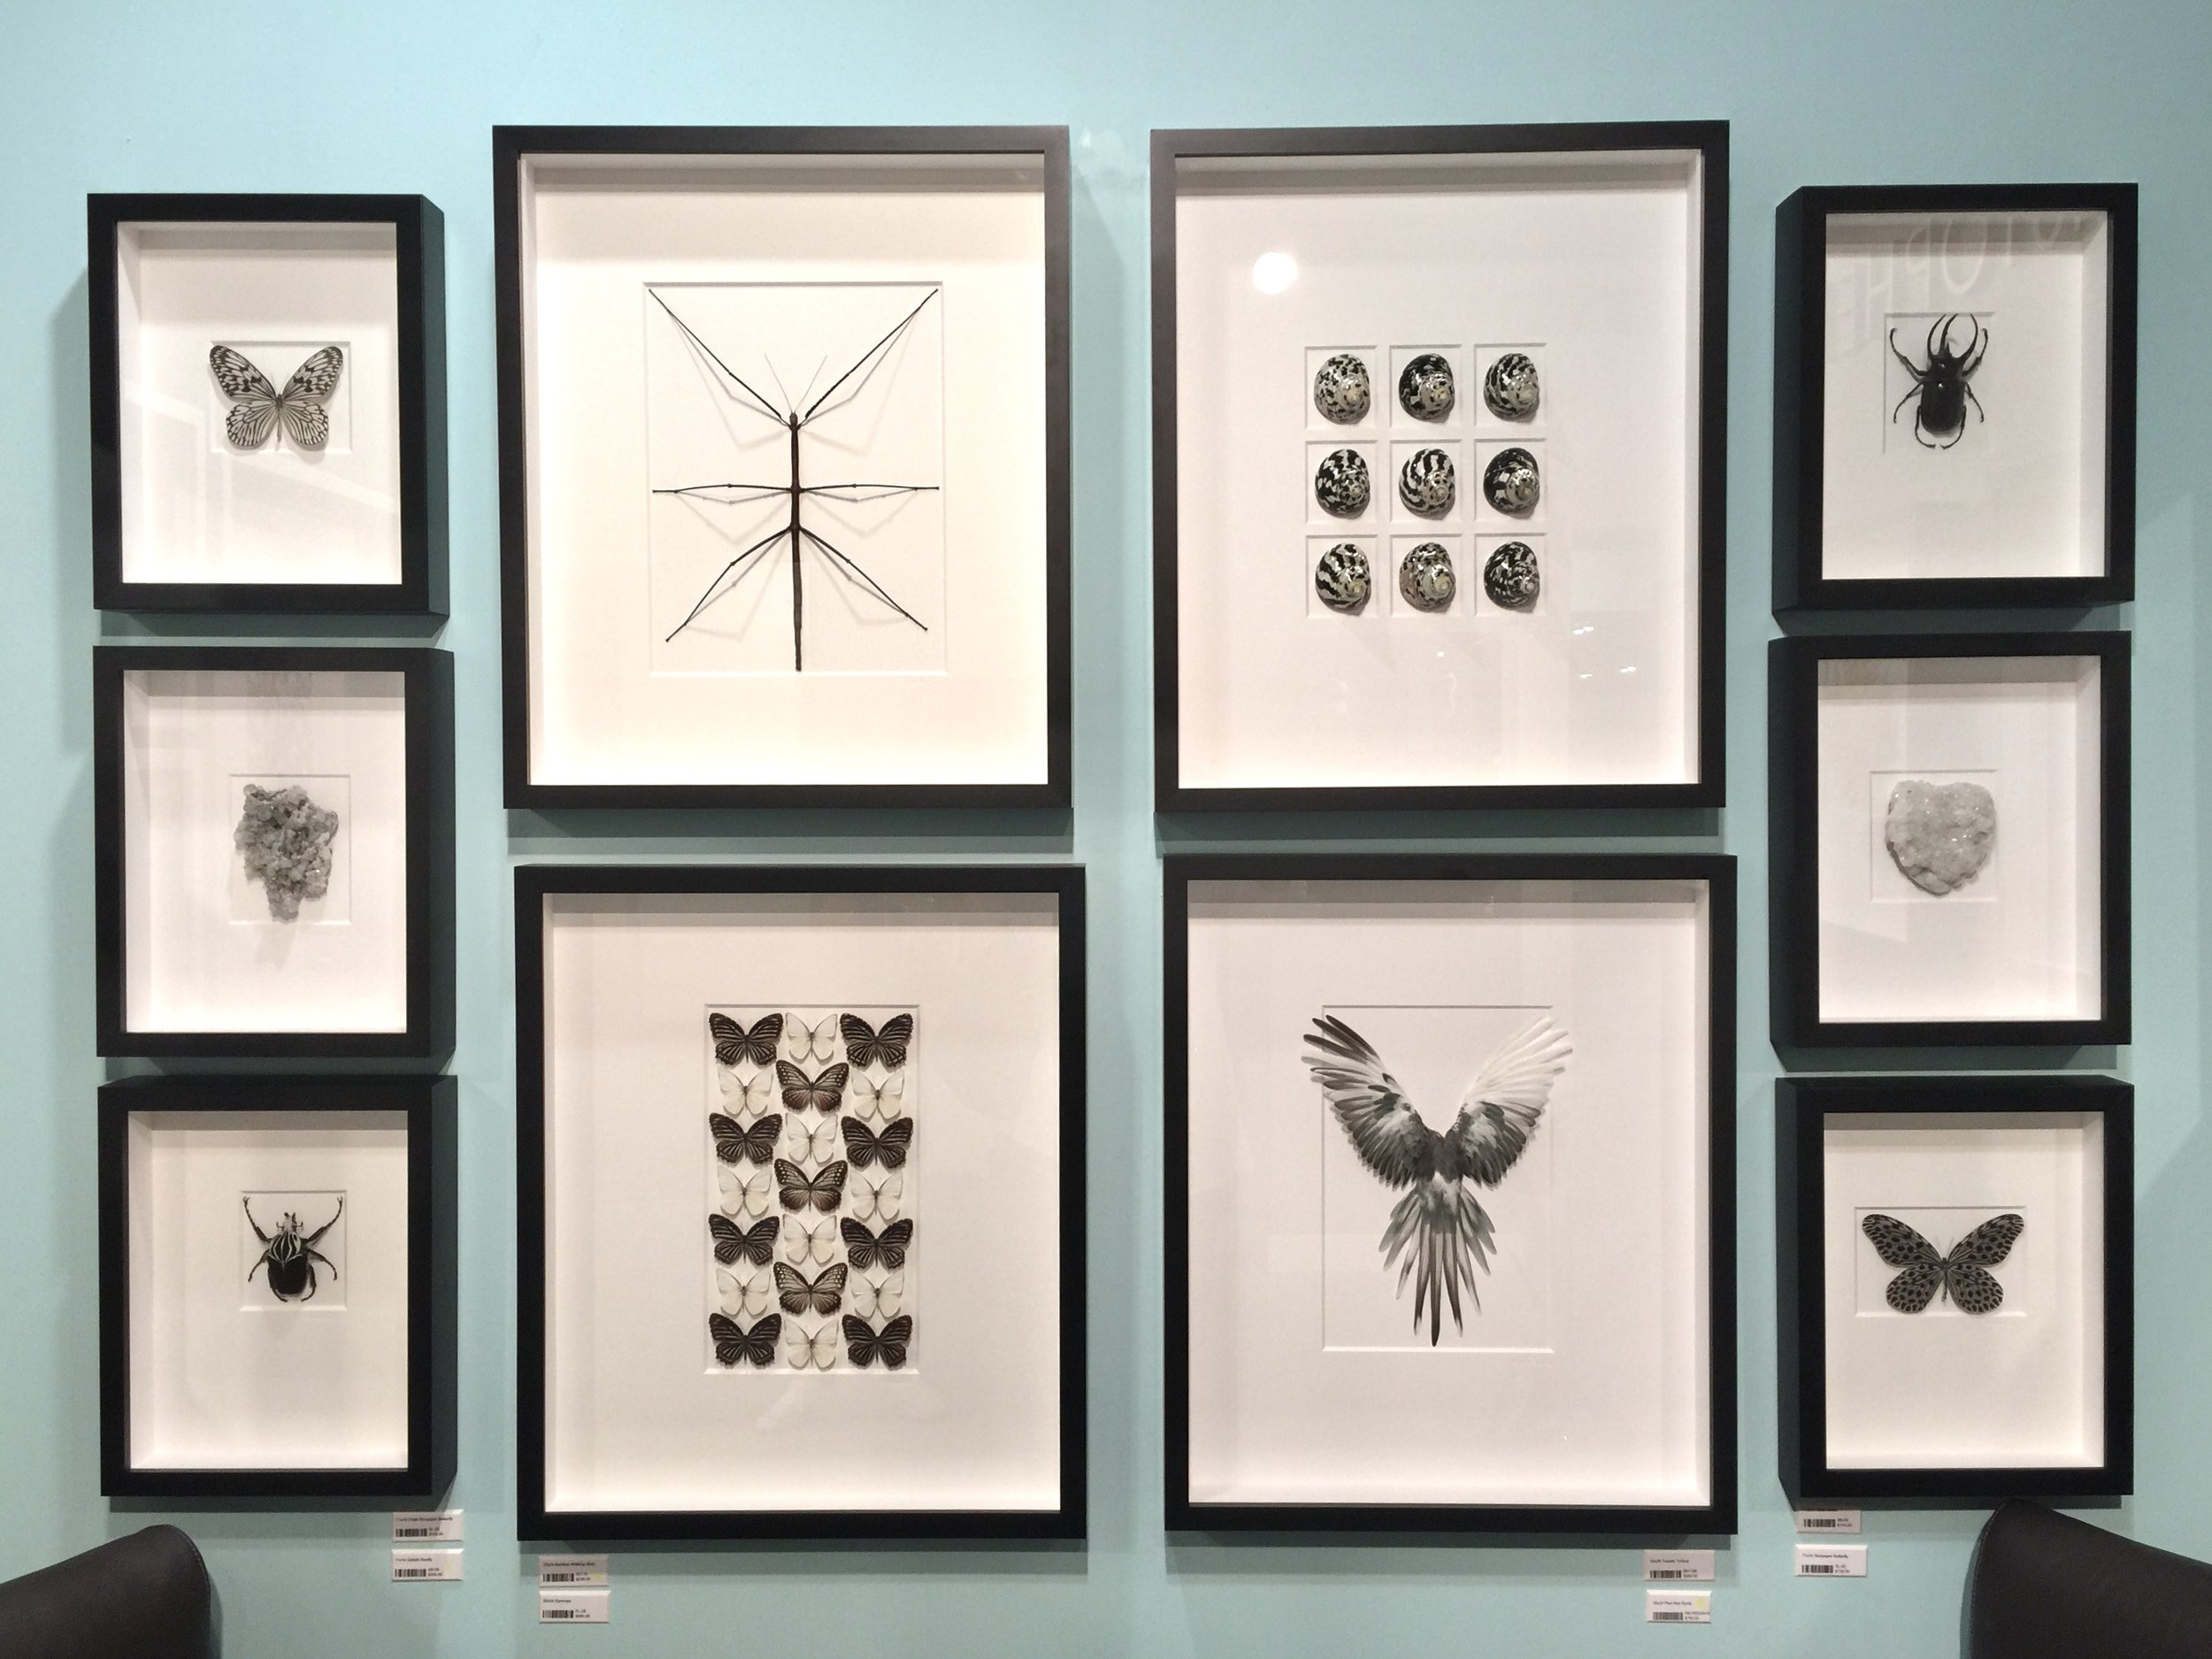 Bugs and natural elements framed as art from Pheromone